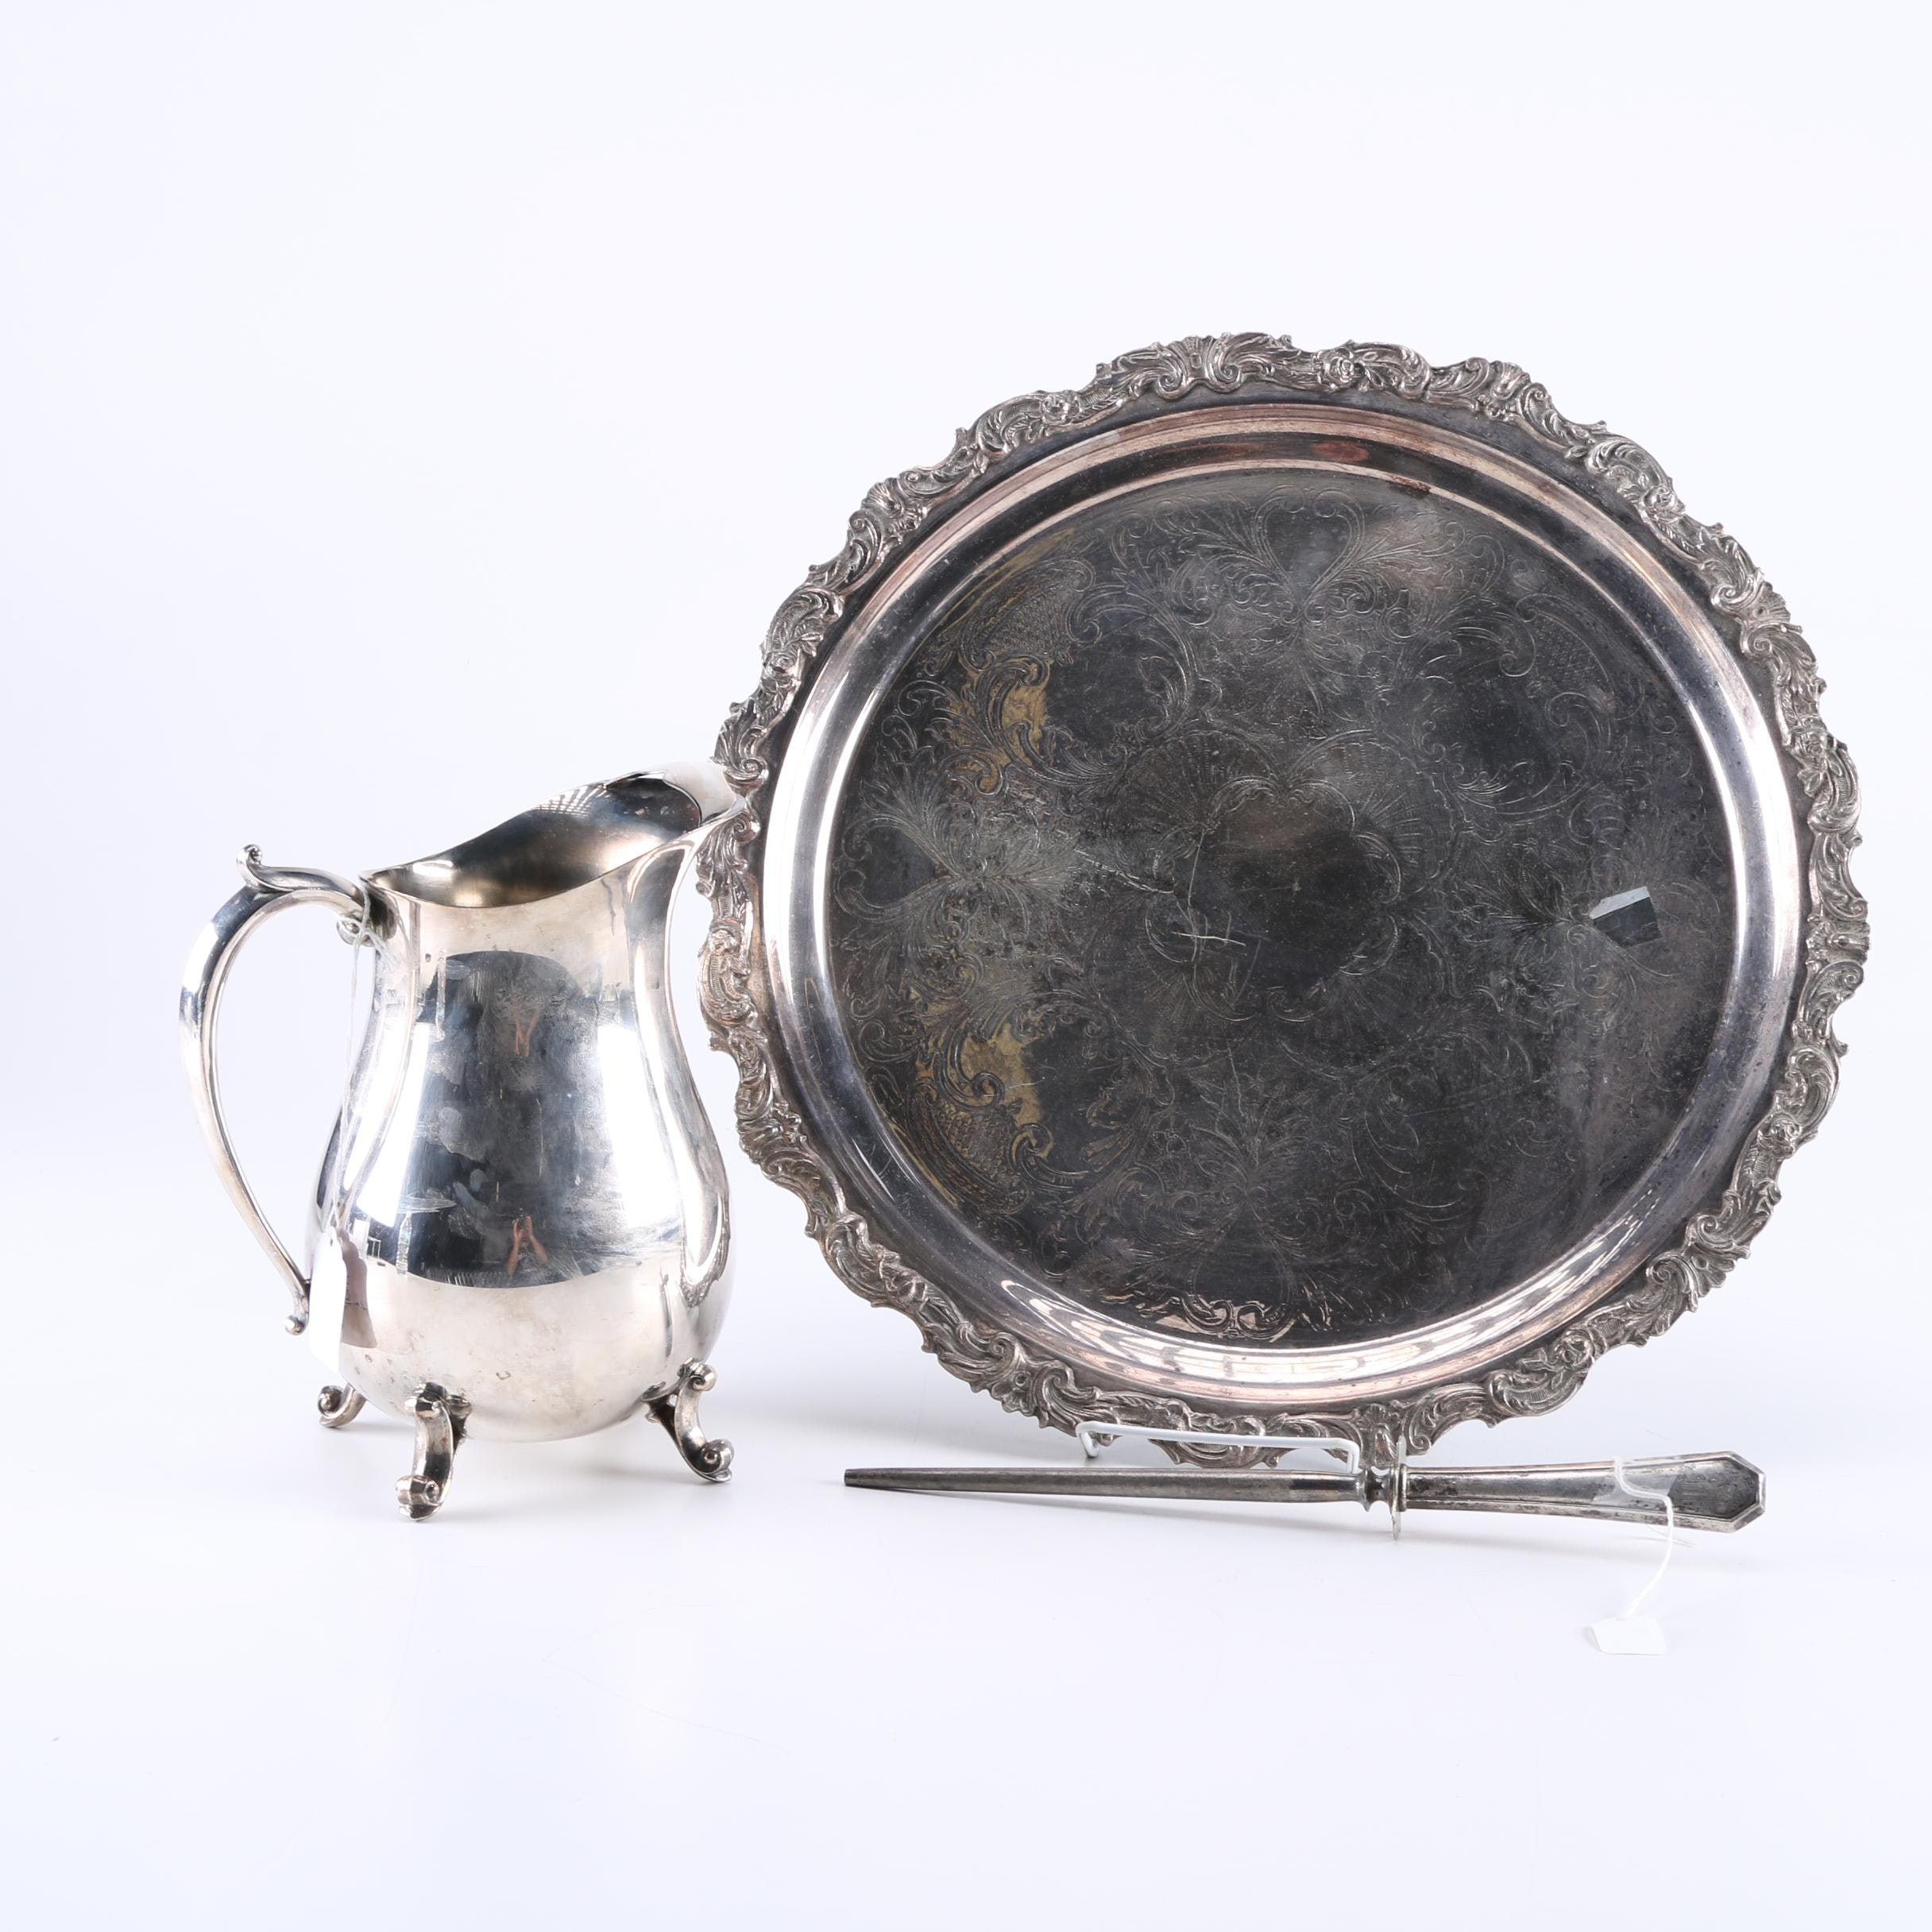 Silver Plate Tableware and Sterling Silver Handled Honing Tool